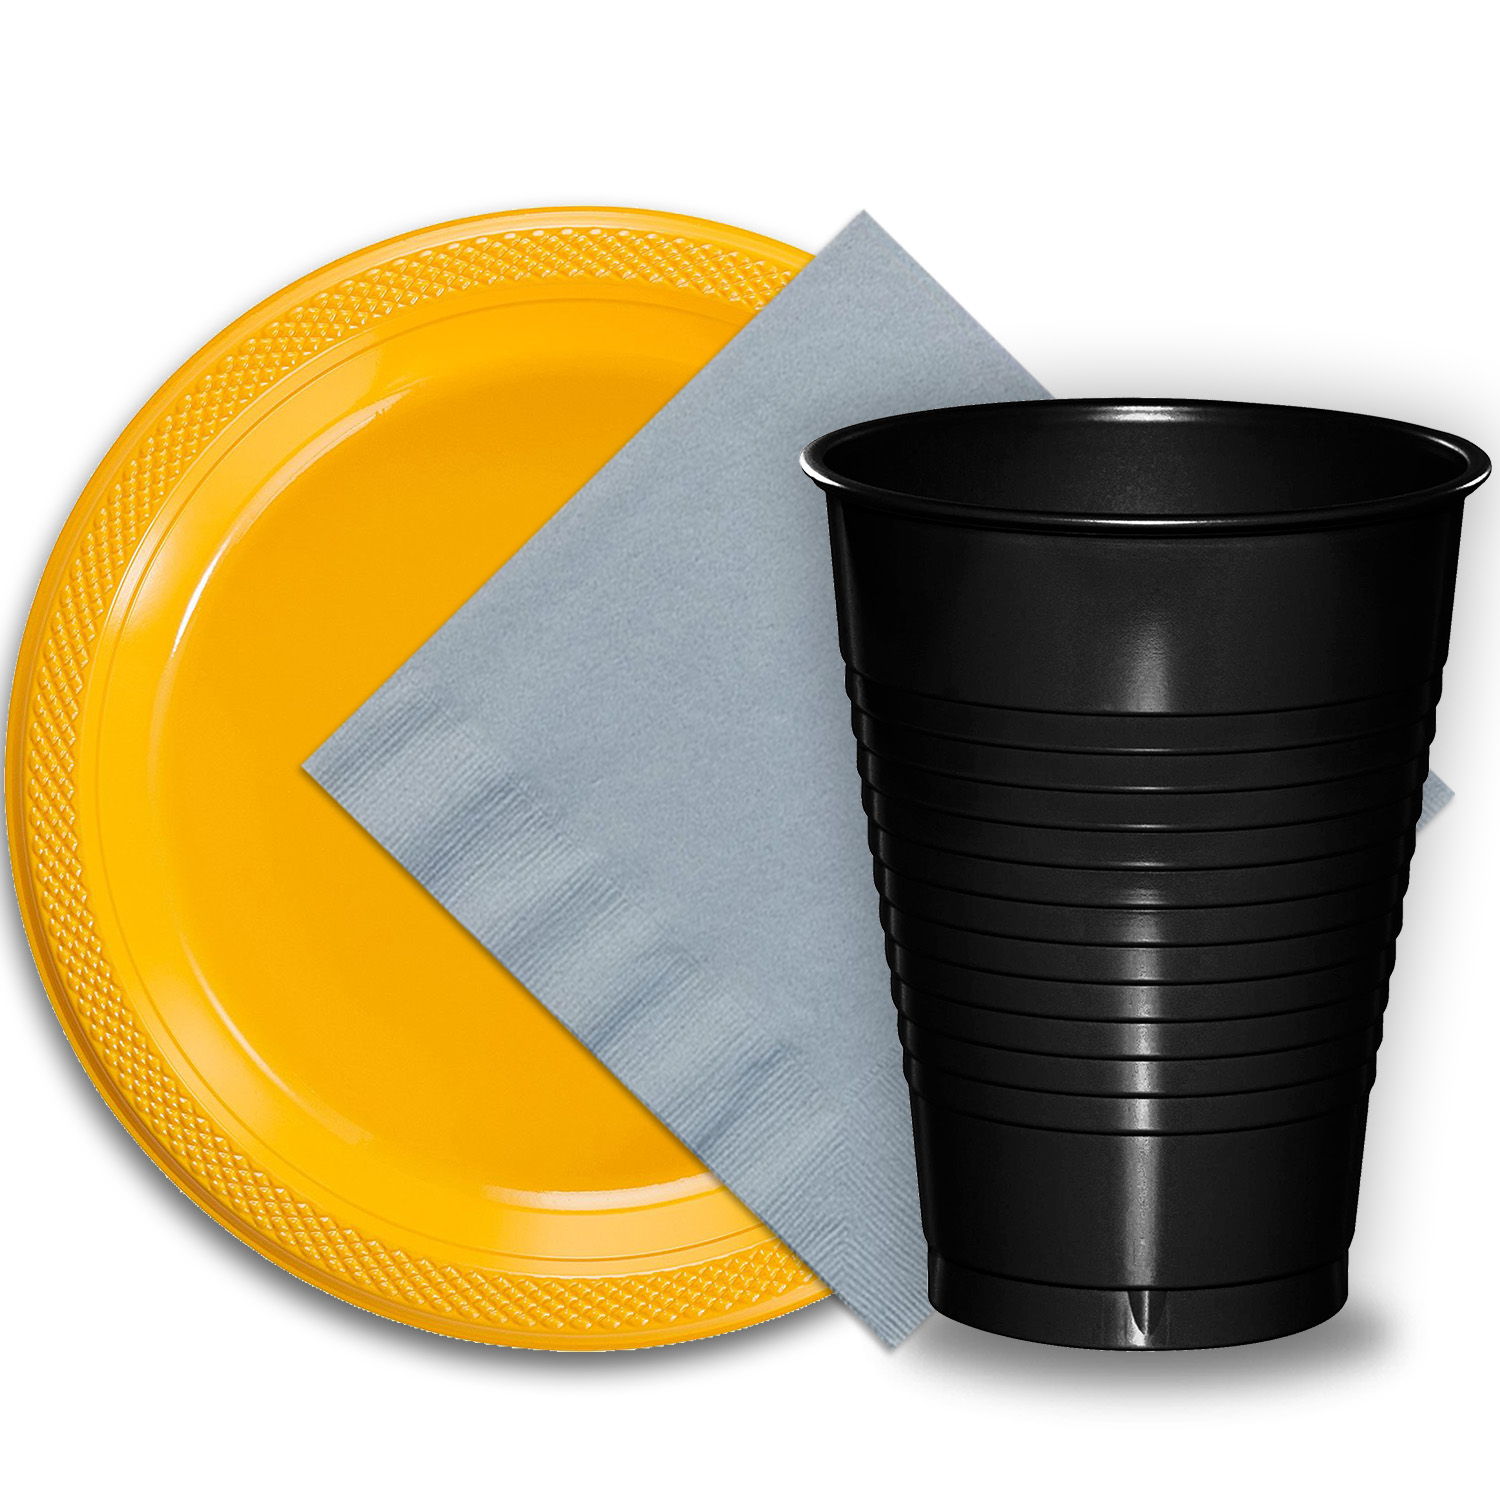 "50 Yellow Plastic Plates (9""), 50 Black Plastic Cups (12 oz.), and 50 Silver Paper Napkins, Dazzelling Colored Disposable Party Supplies Tableware Set for Fifty Guests."